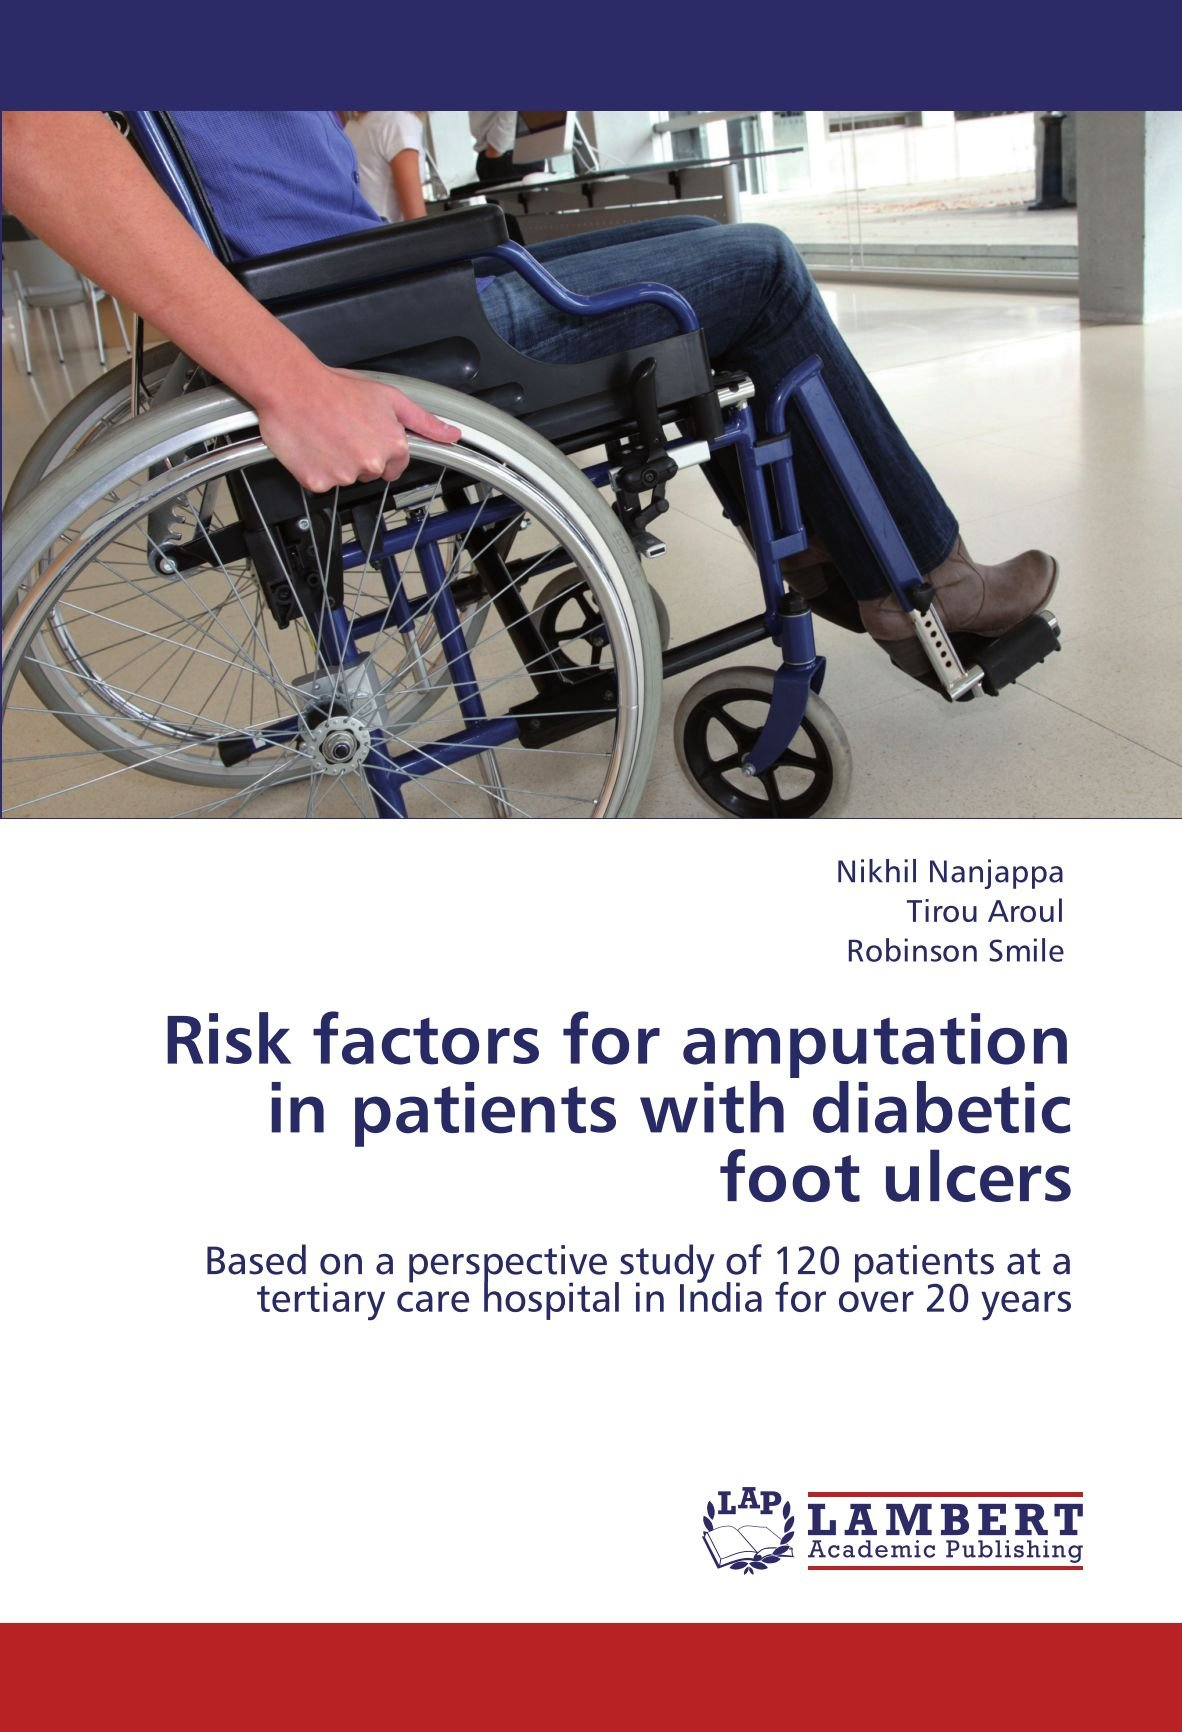 Risk factors for amputation in patients with